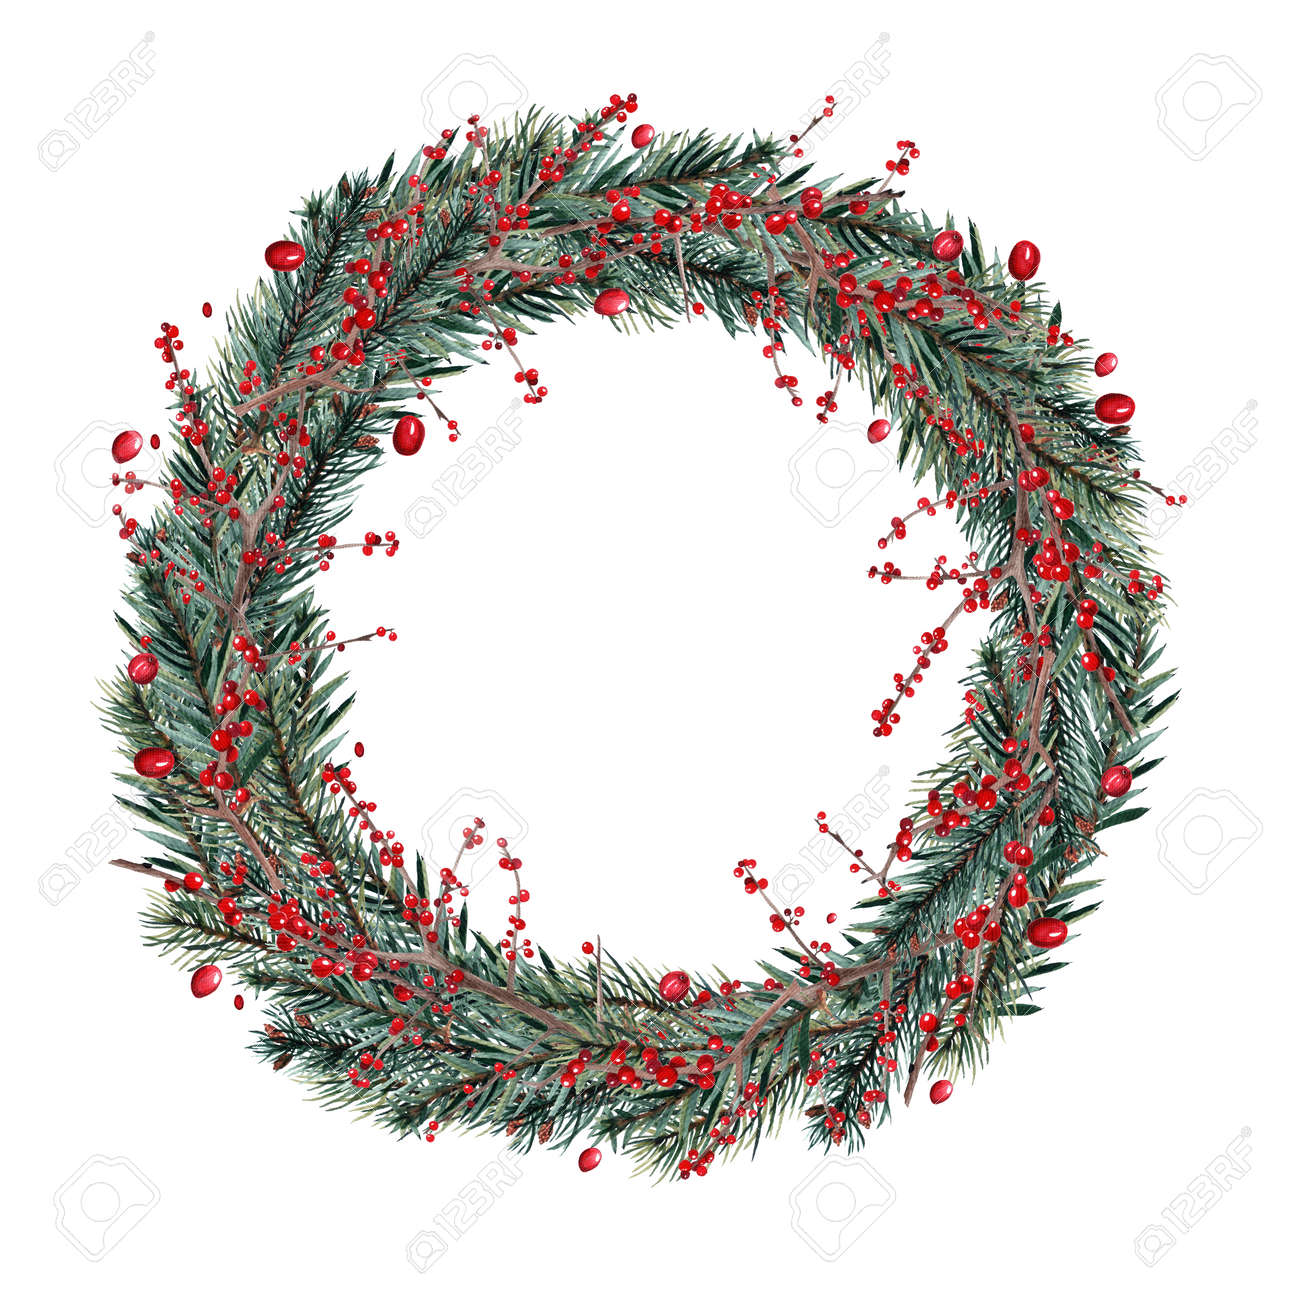 Watercolor Christmas Wreaths Stock Photo Picture And Royalty Free